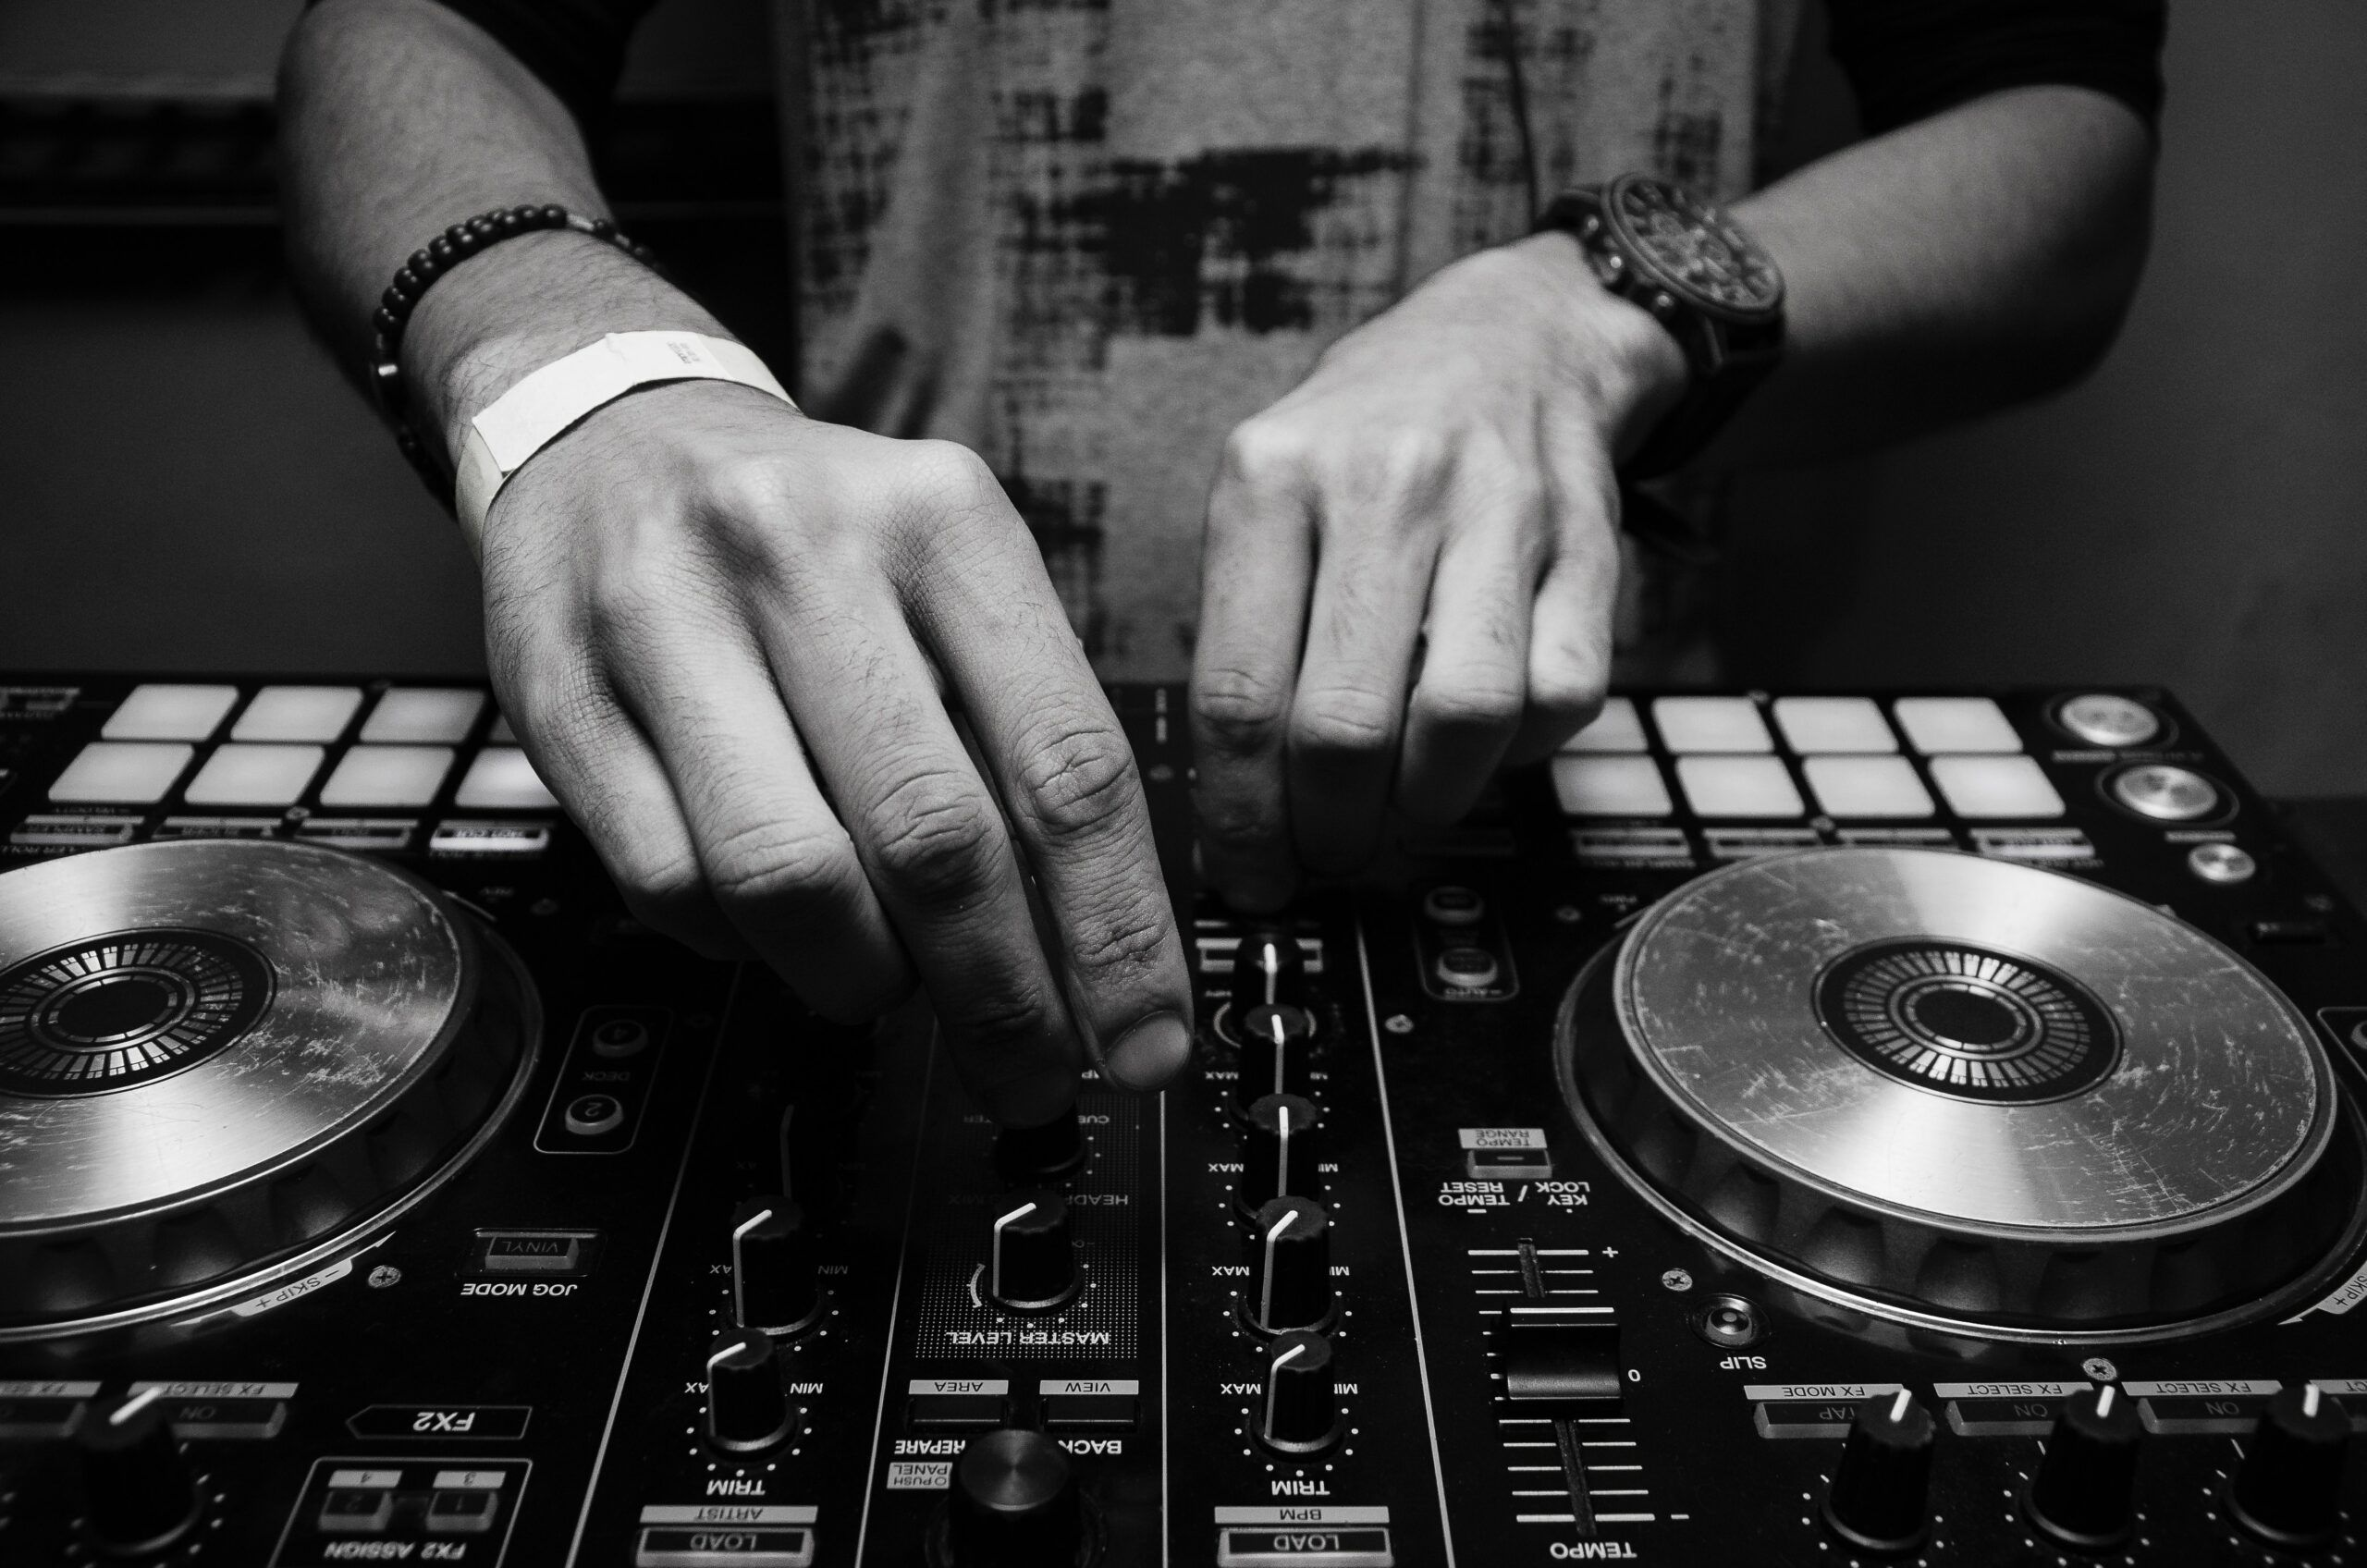 Beatsource + Mixcloud team up so you can record & share DJ sets online sans takedowns